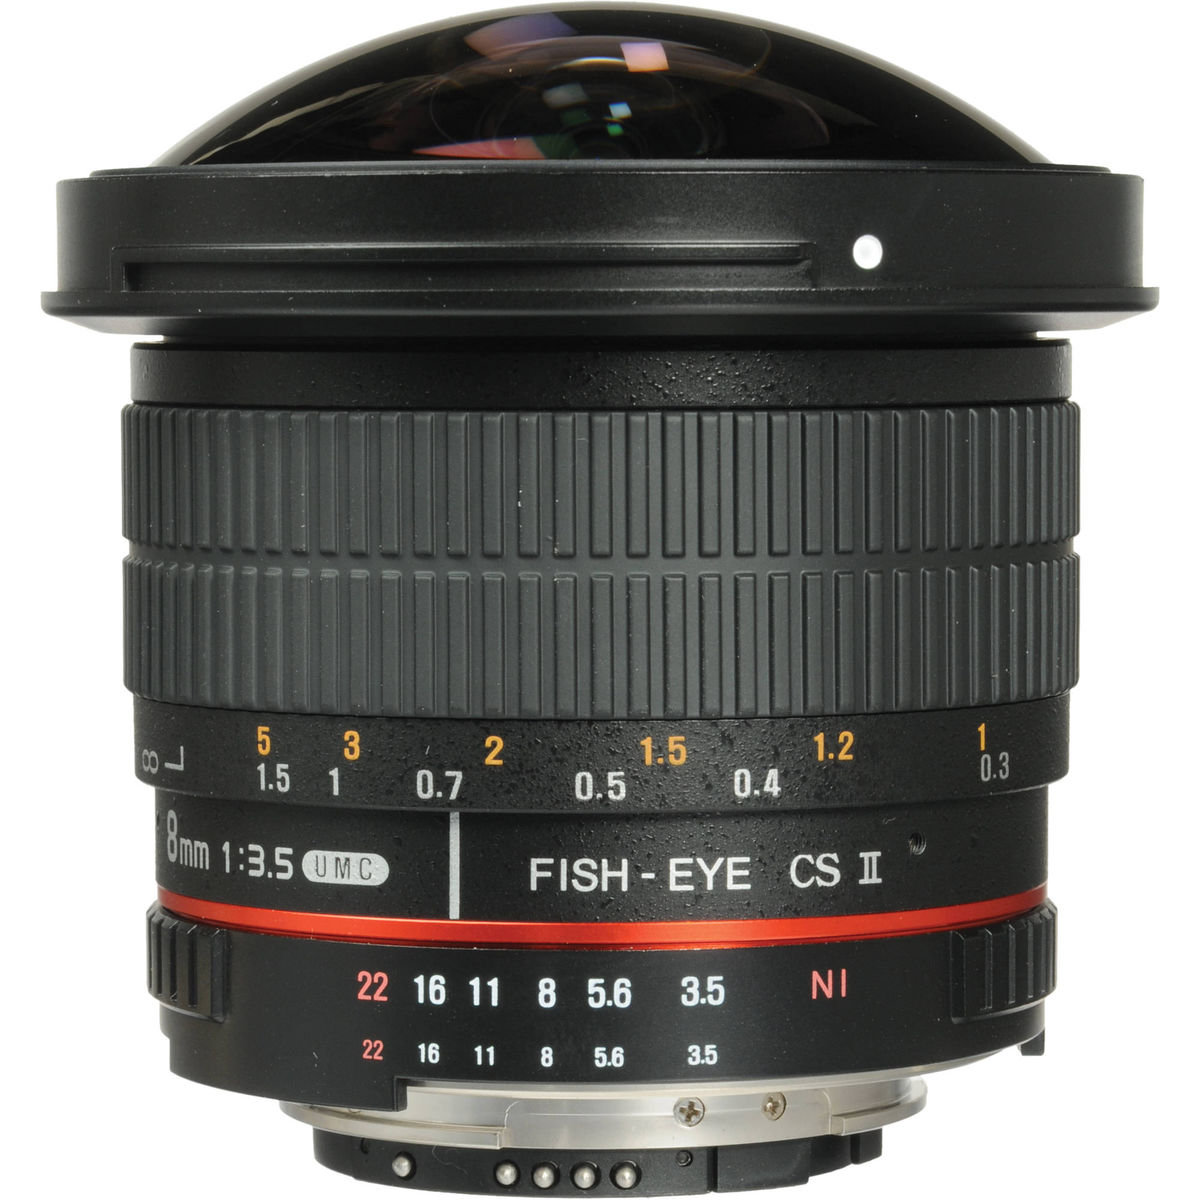 SAMYANG 8mm f/3.5 Fish-eye AE Nikon